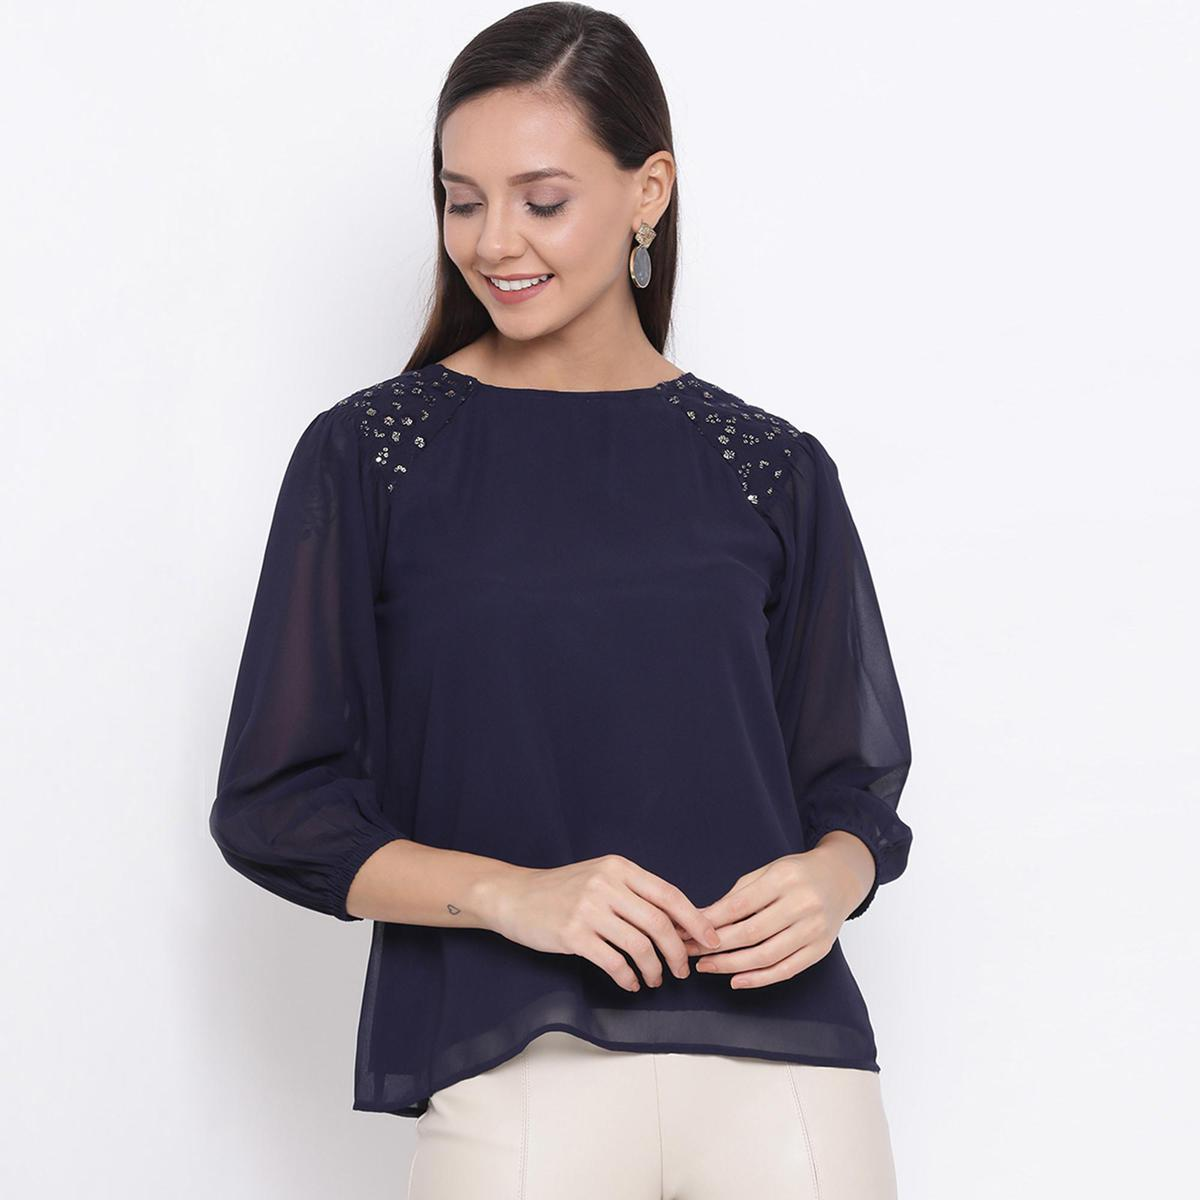 DRAAX FASHIONS - Women Navy Blue Embellished A-line Top